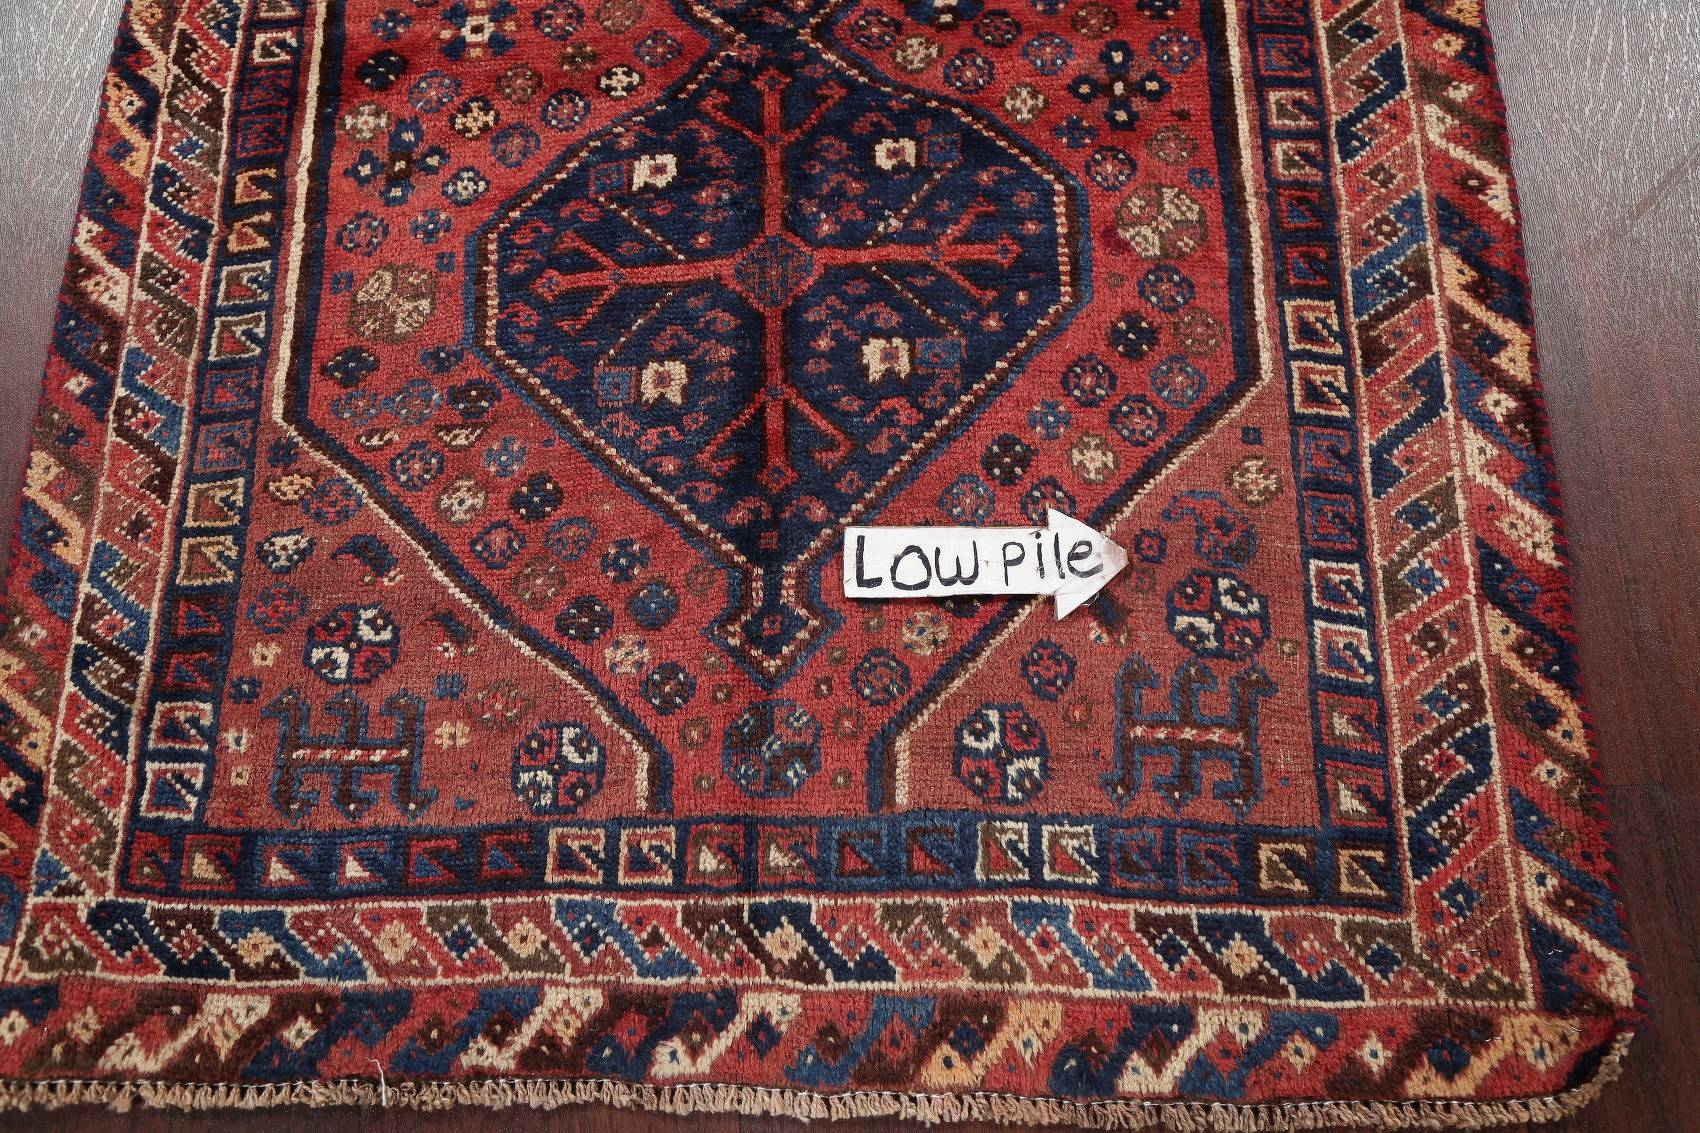 Antique Tribal Lori Persian Hand-Knotted 4x7 Wool Area Rug